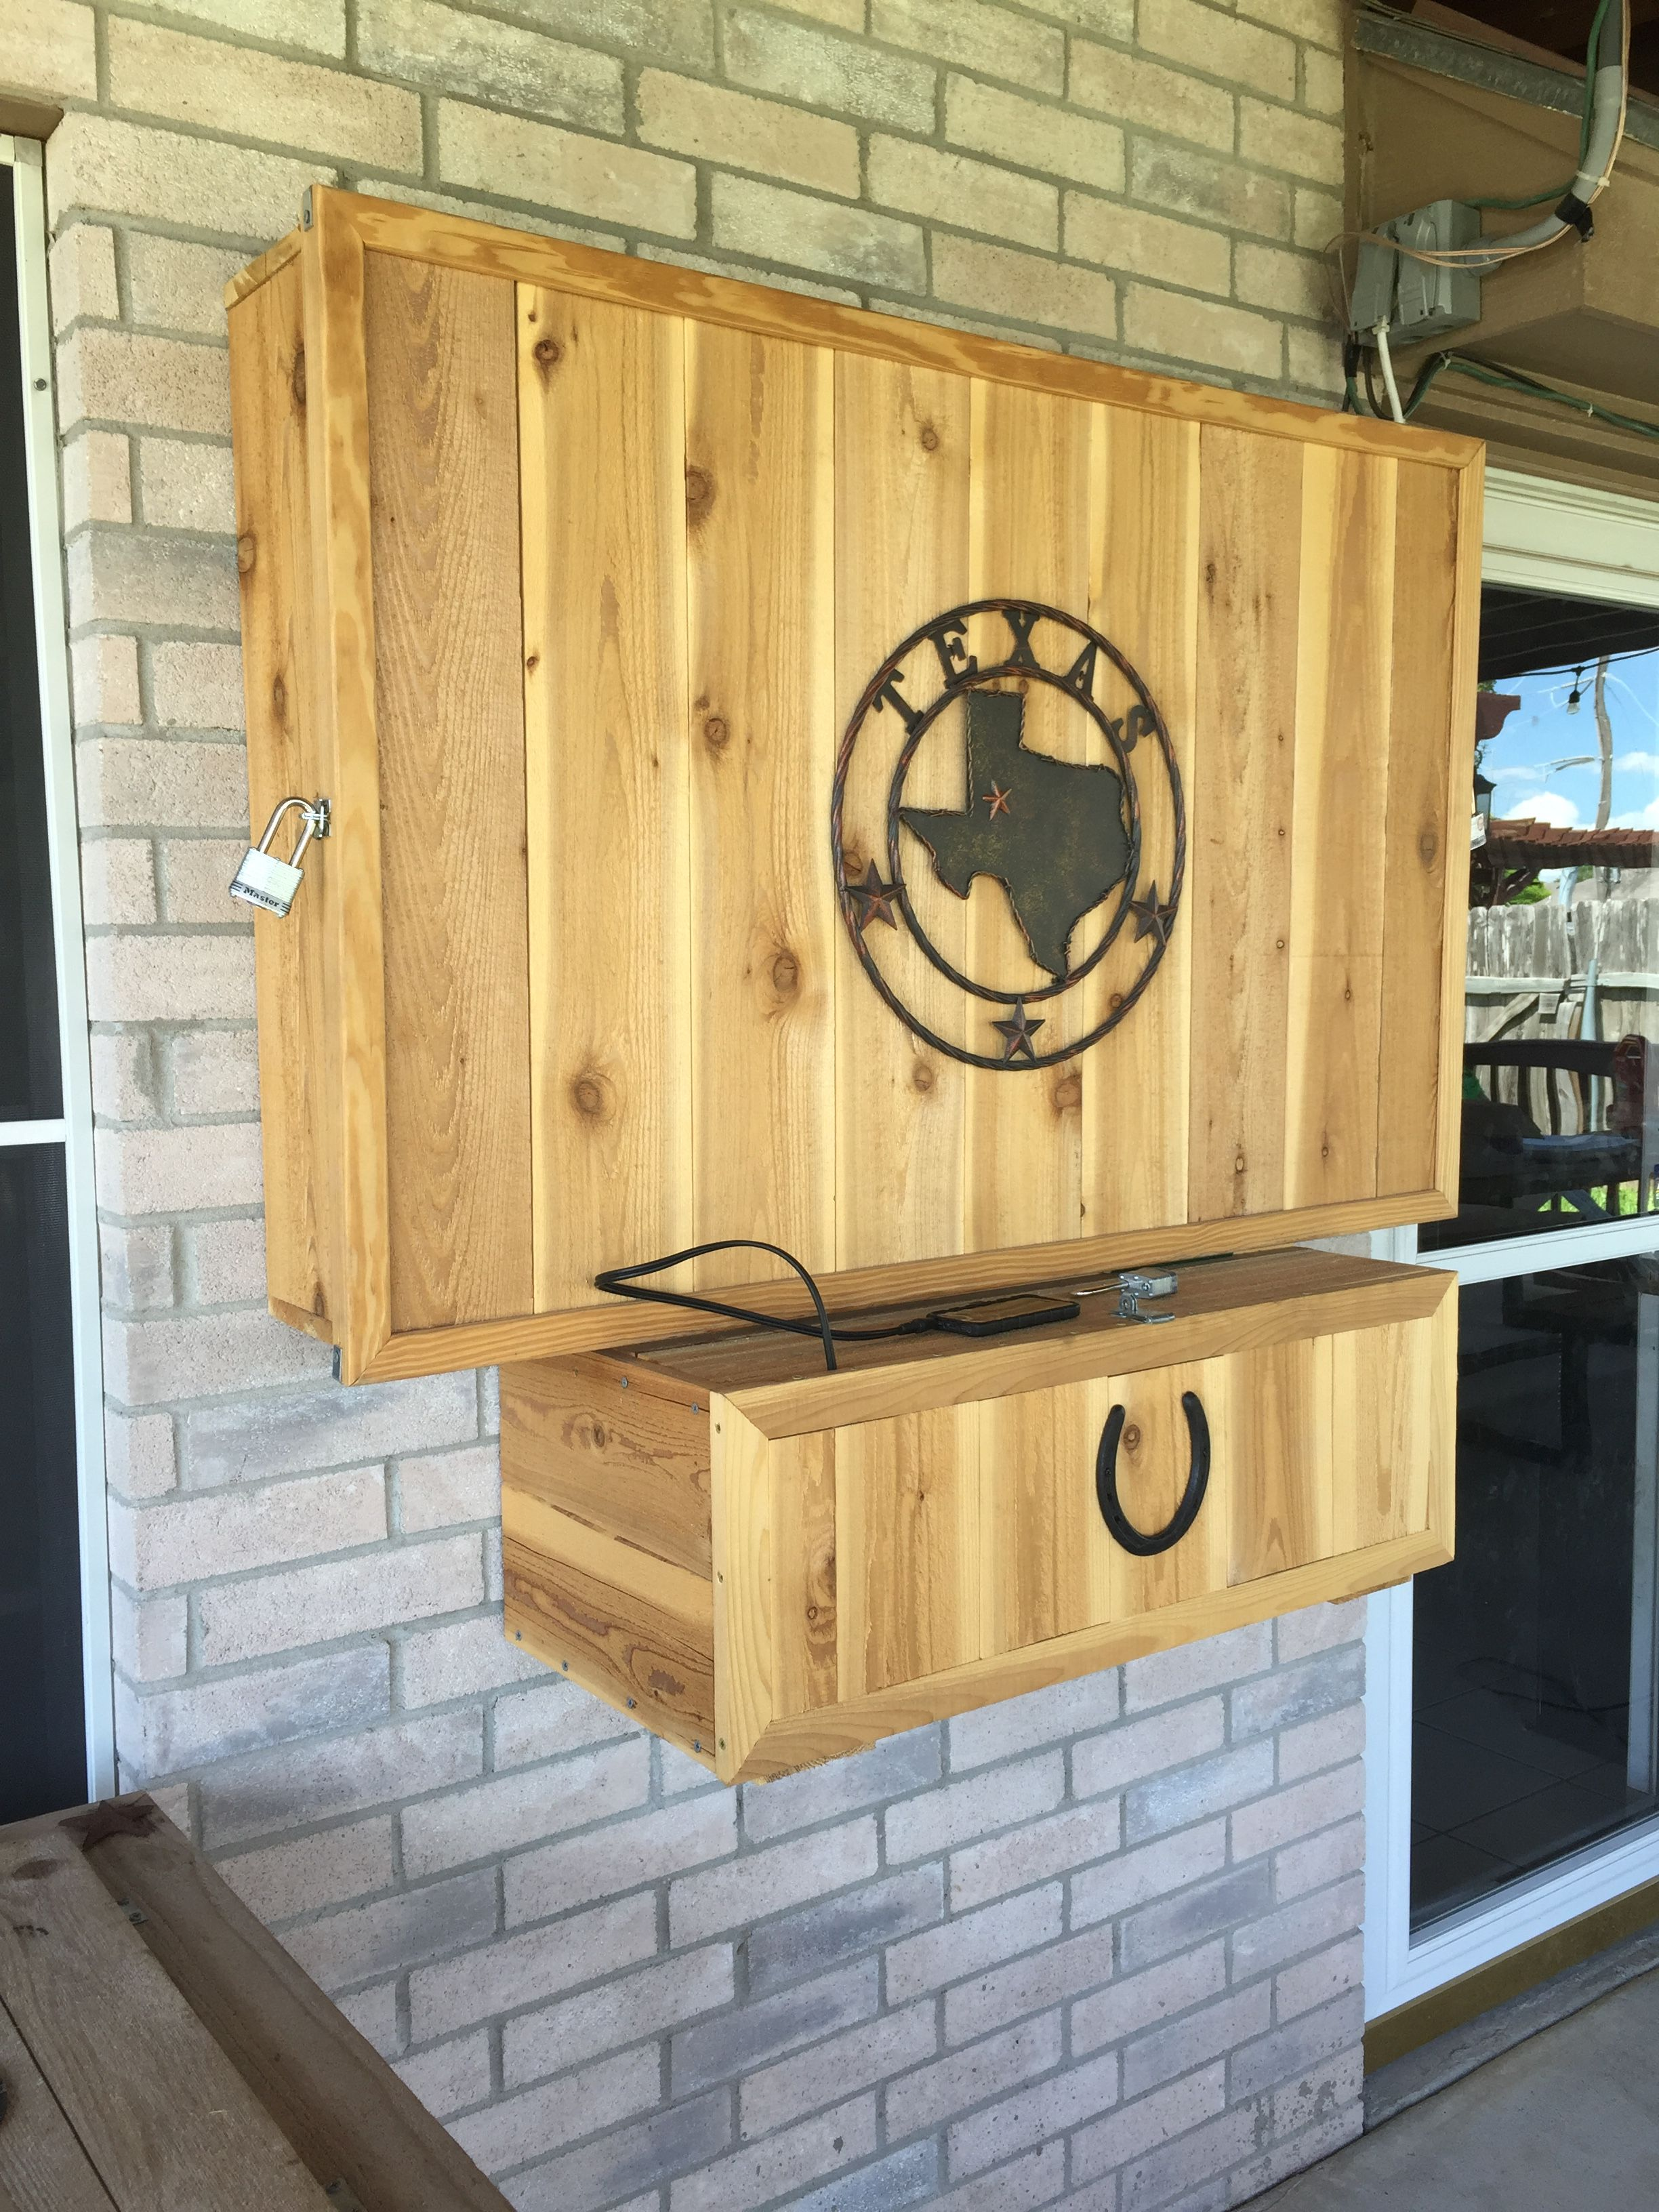 Diy Tv And Receiver Cabinet Outdoor Tv Cabinet Diy Outdoor Kitchen Tv Cabinet Diy